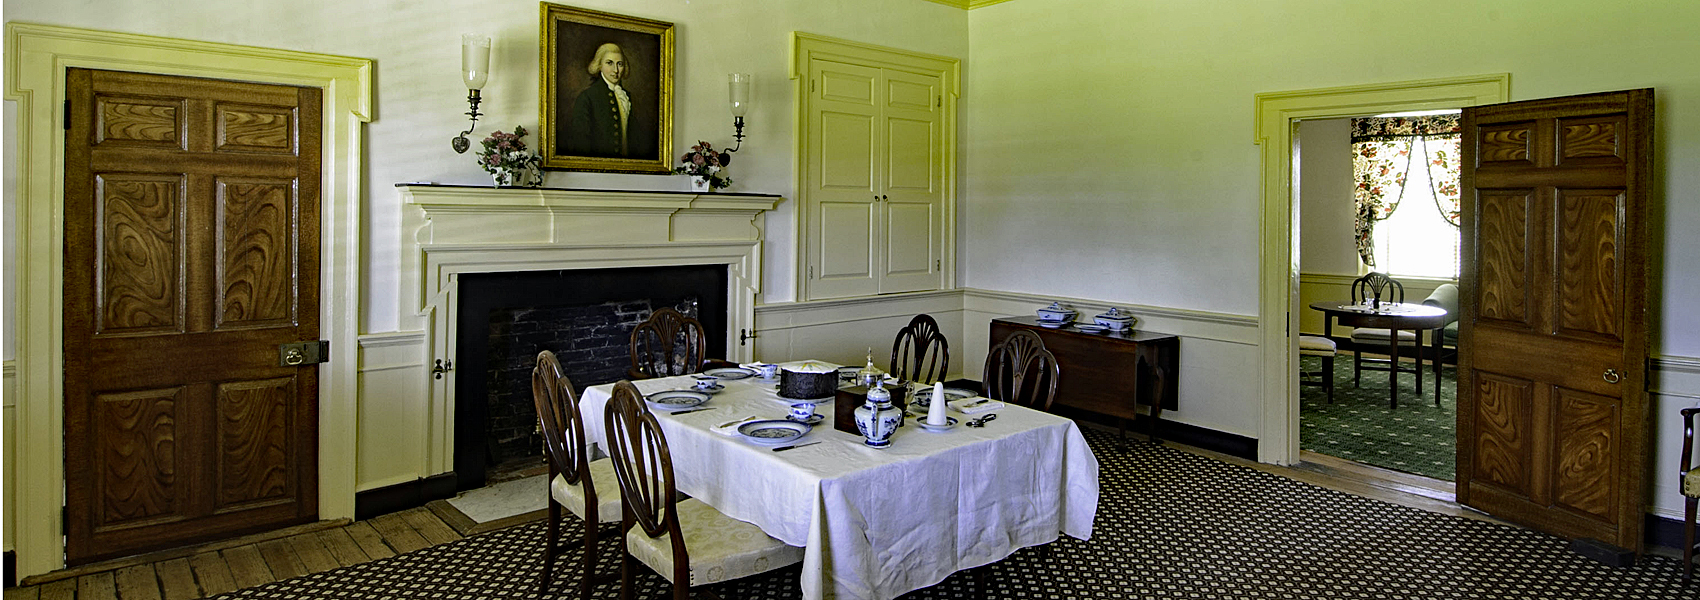 Dining room in Sully's main house